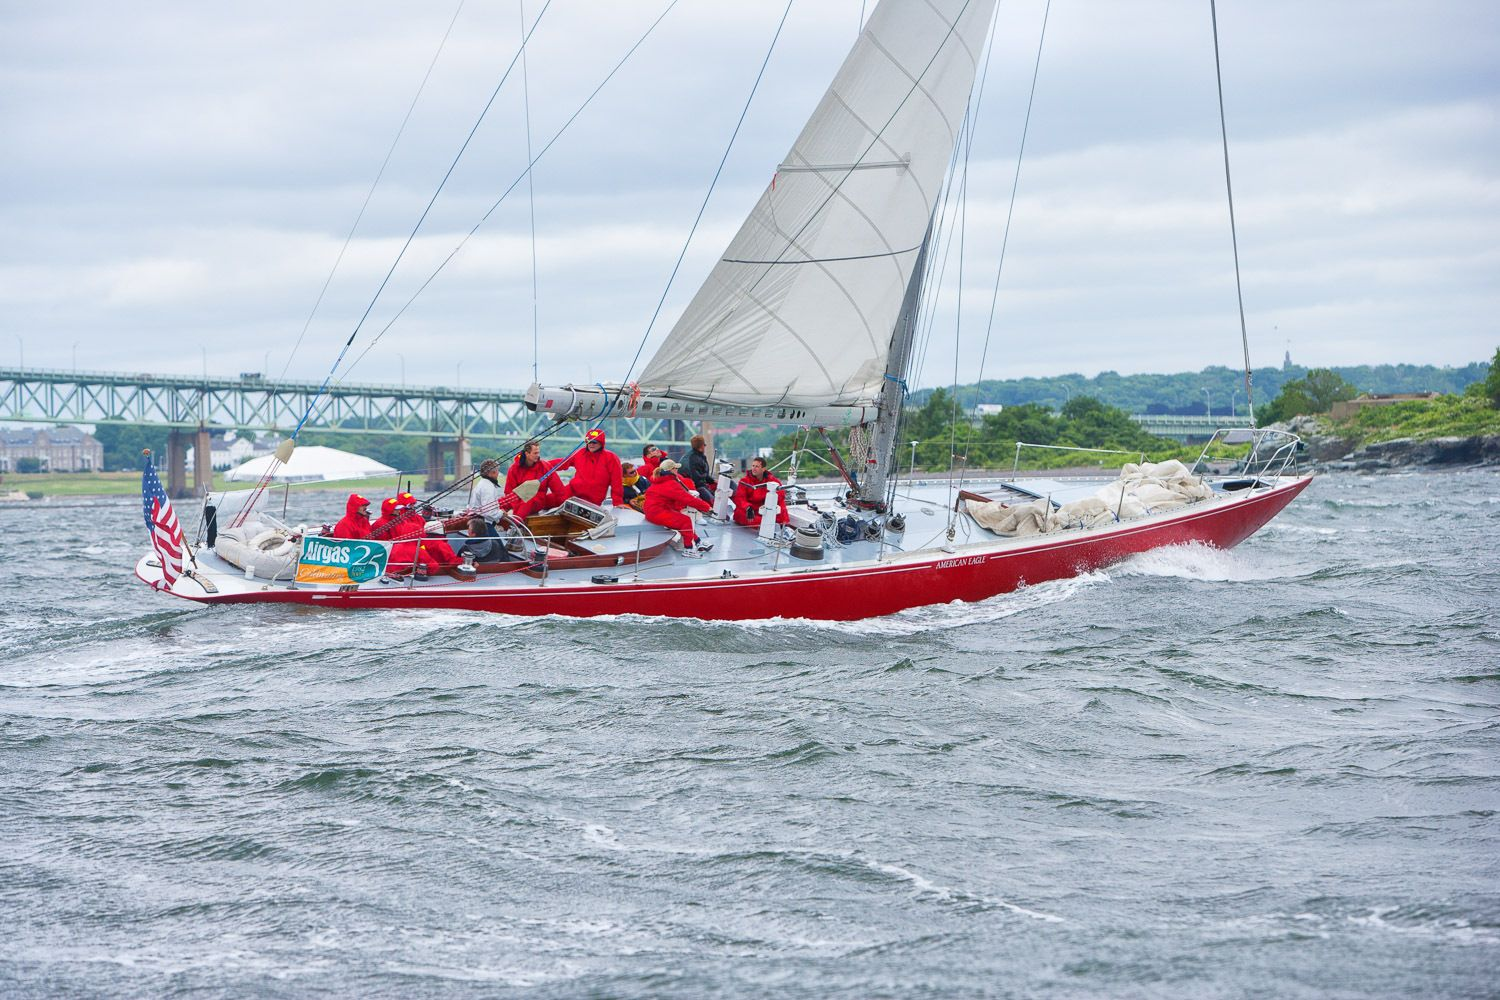 Corporate vistors enjoying a afternoon sail on a 12-meter on Narragansett Bay.